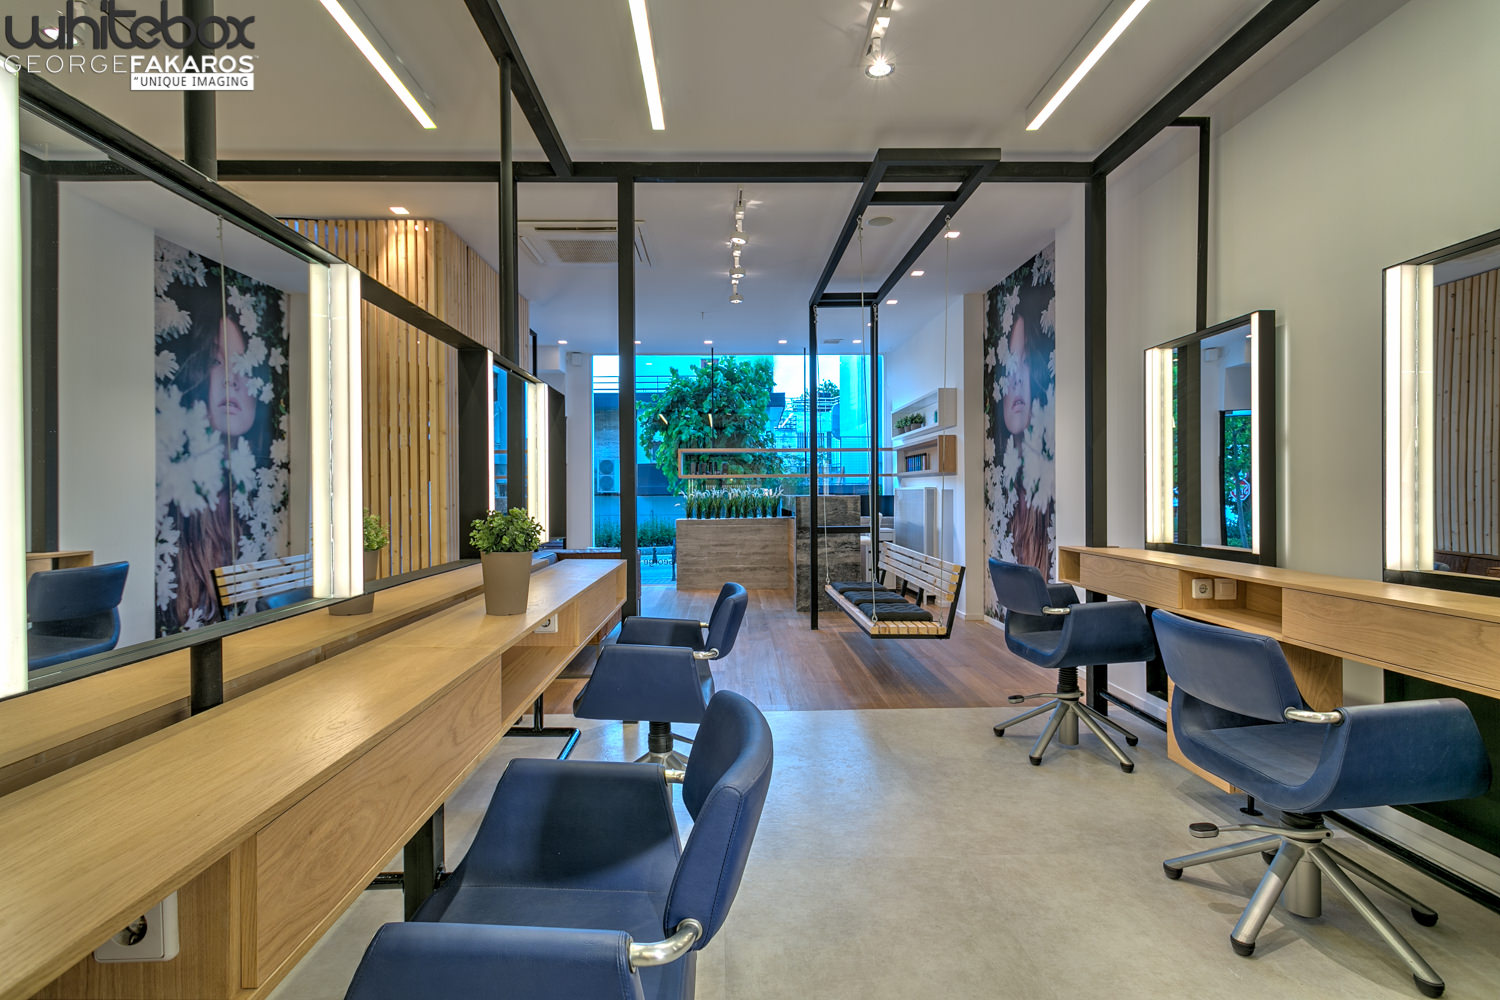 costas hair salon in kifissia